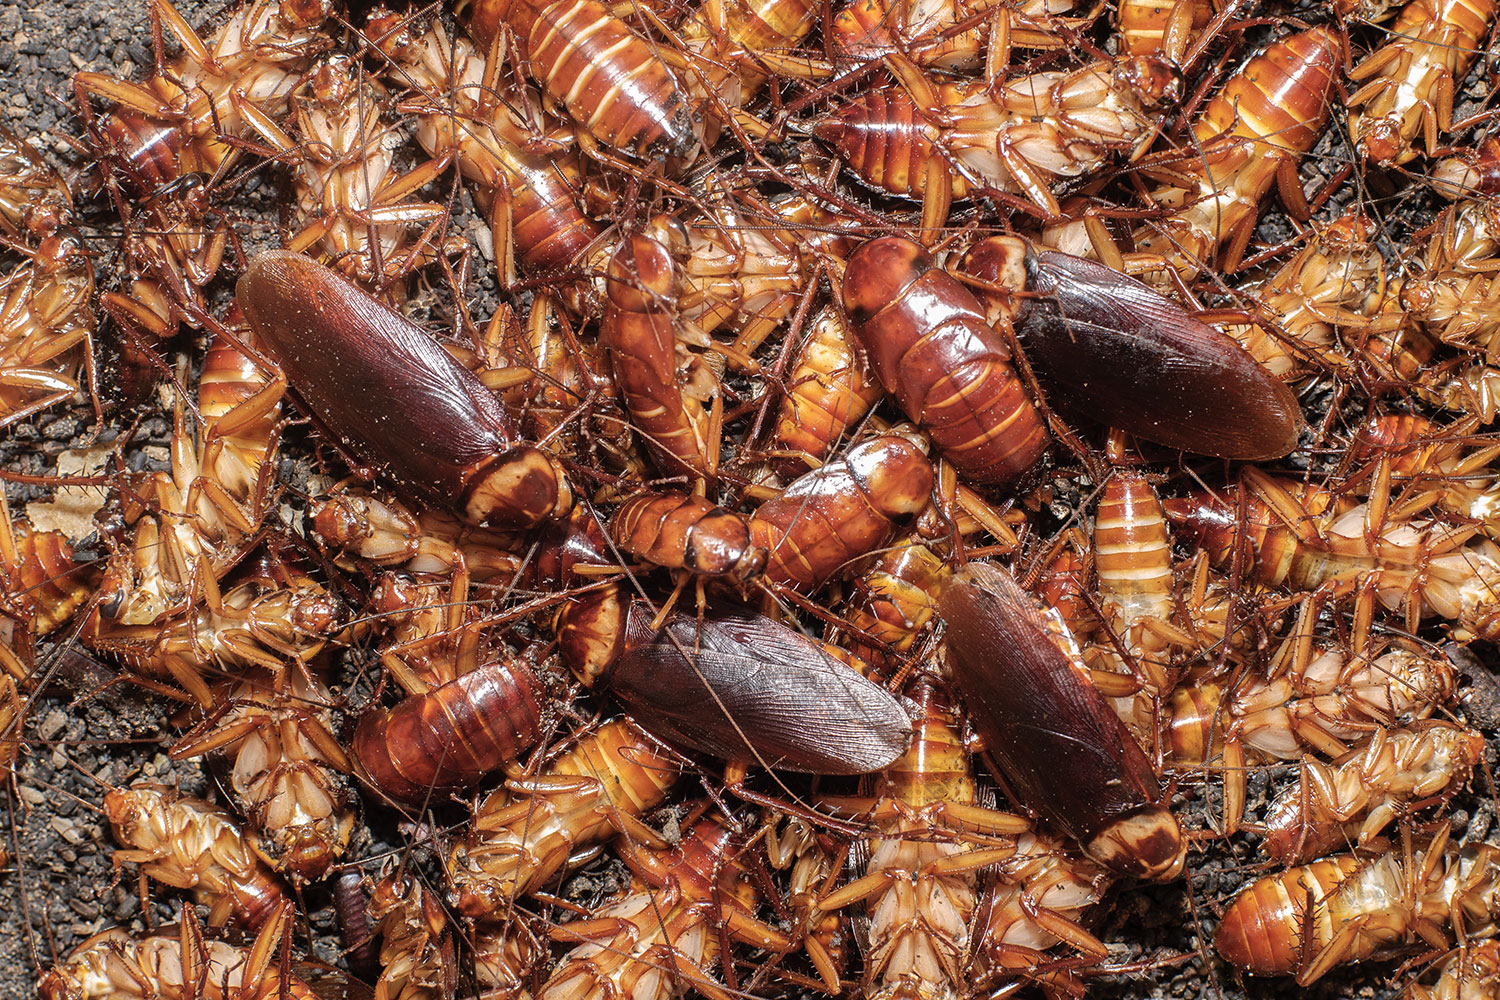 Cockroach Population Explodes Due To Hot And Humid Weather